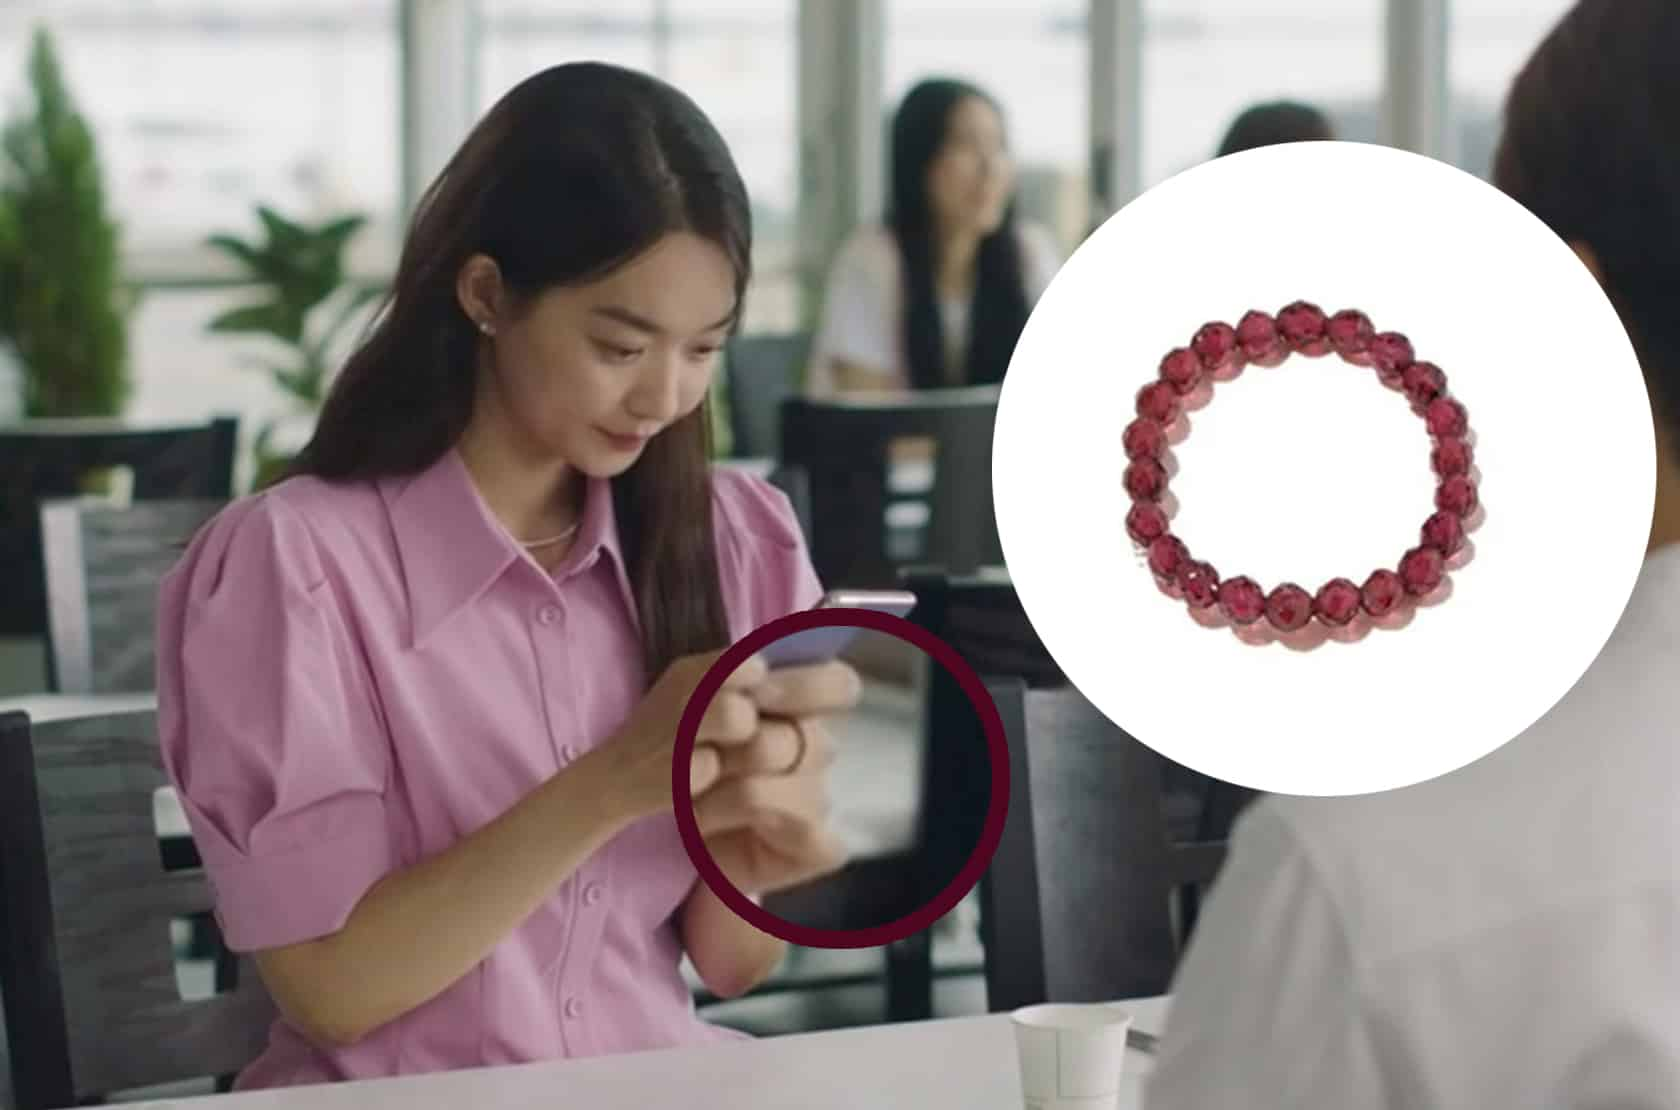 YOU CAN BUY THIS GARNET RING FROM MY HOMETOWN CHA CHA CHA FOR ONLY P380!